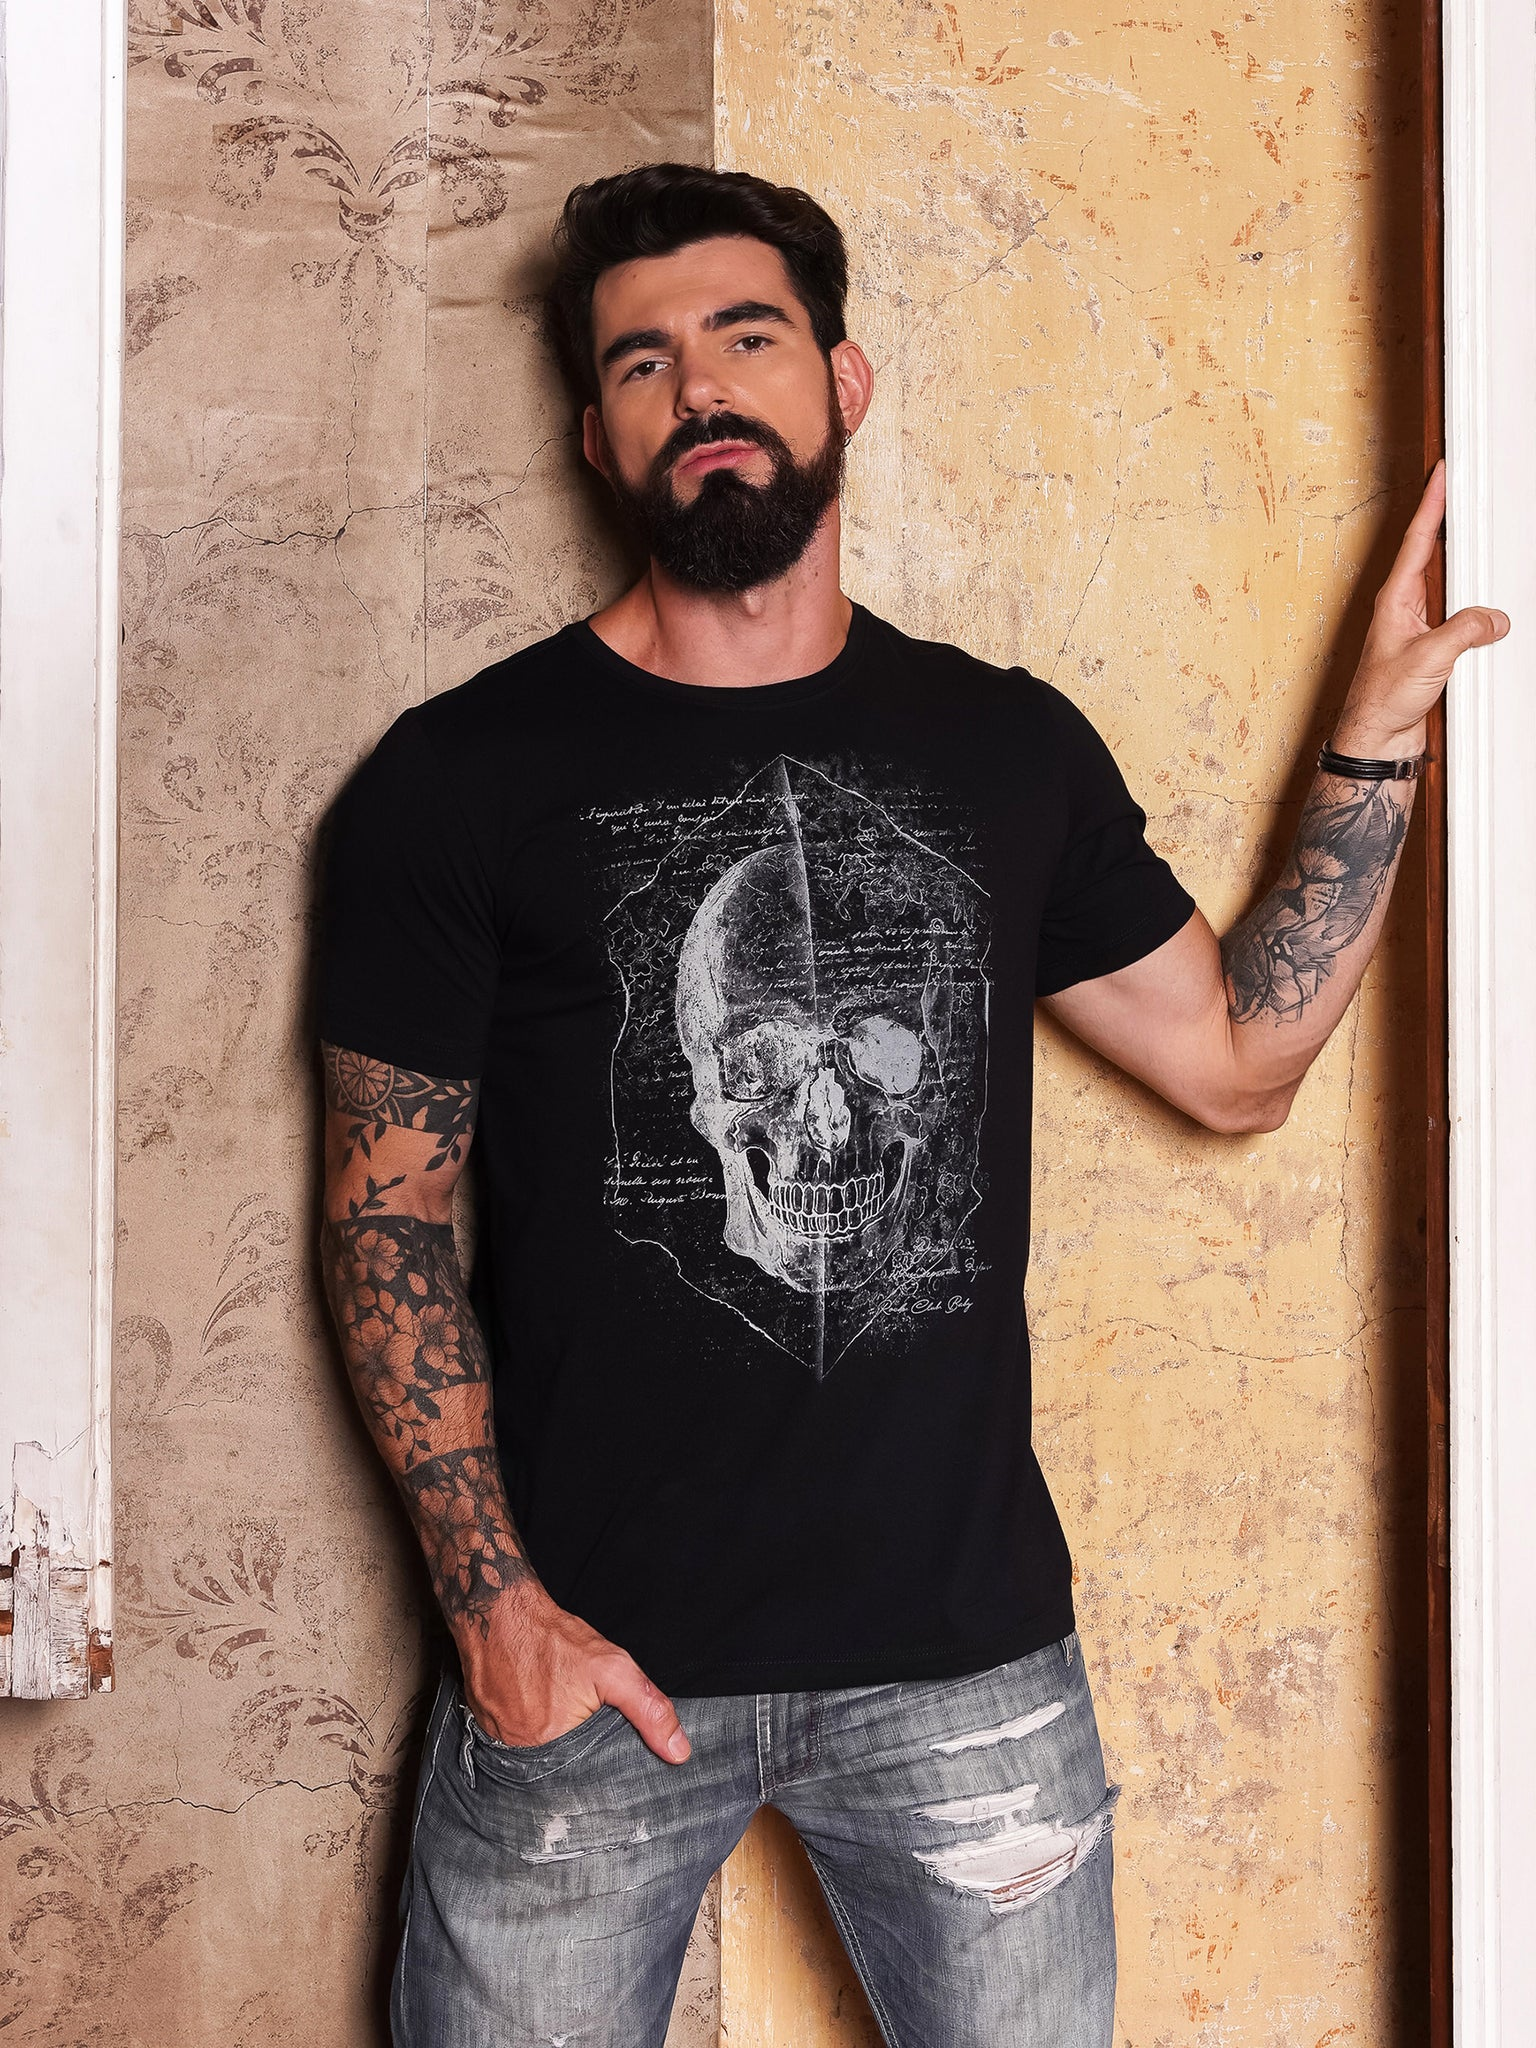 https://www.rockclubbaby.com.br/collections/masculino/products/camiseta-masculina-calligraphy-skull